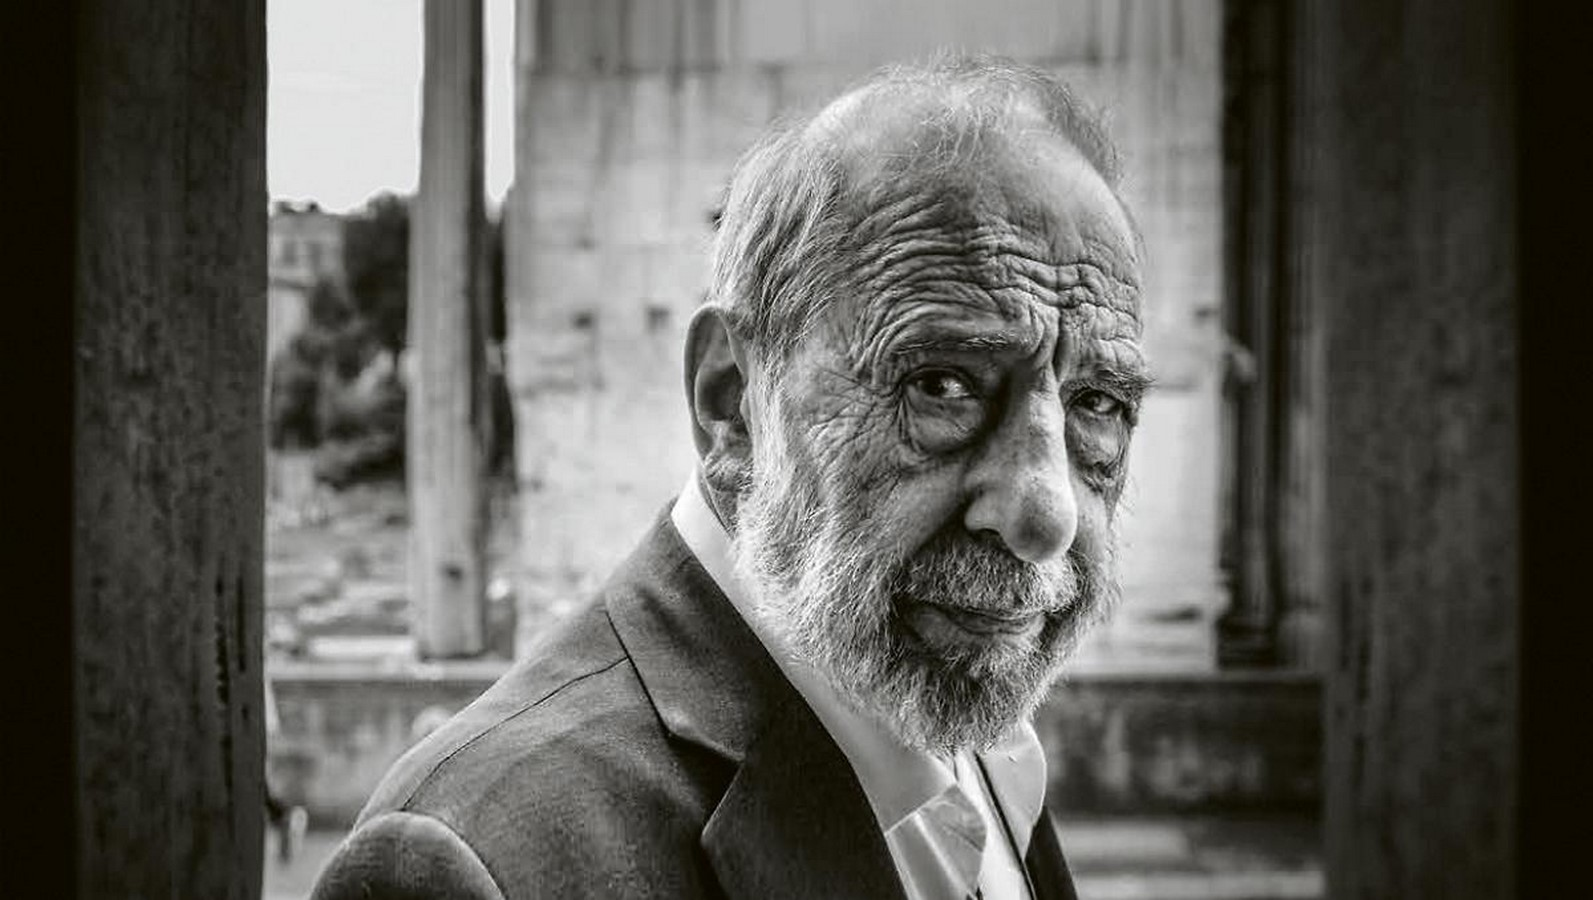 10 Things you did not know about Álvaro Siza - Sheet1